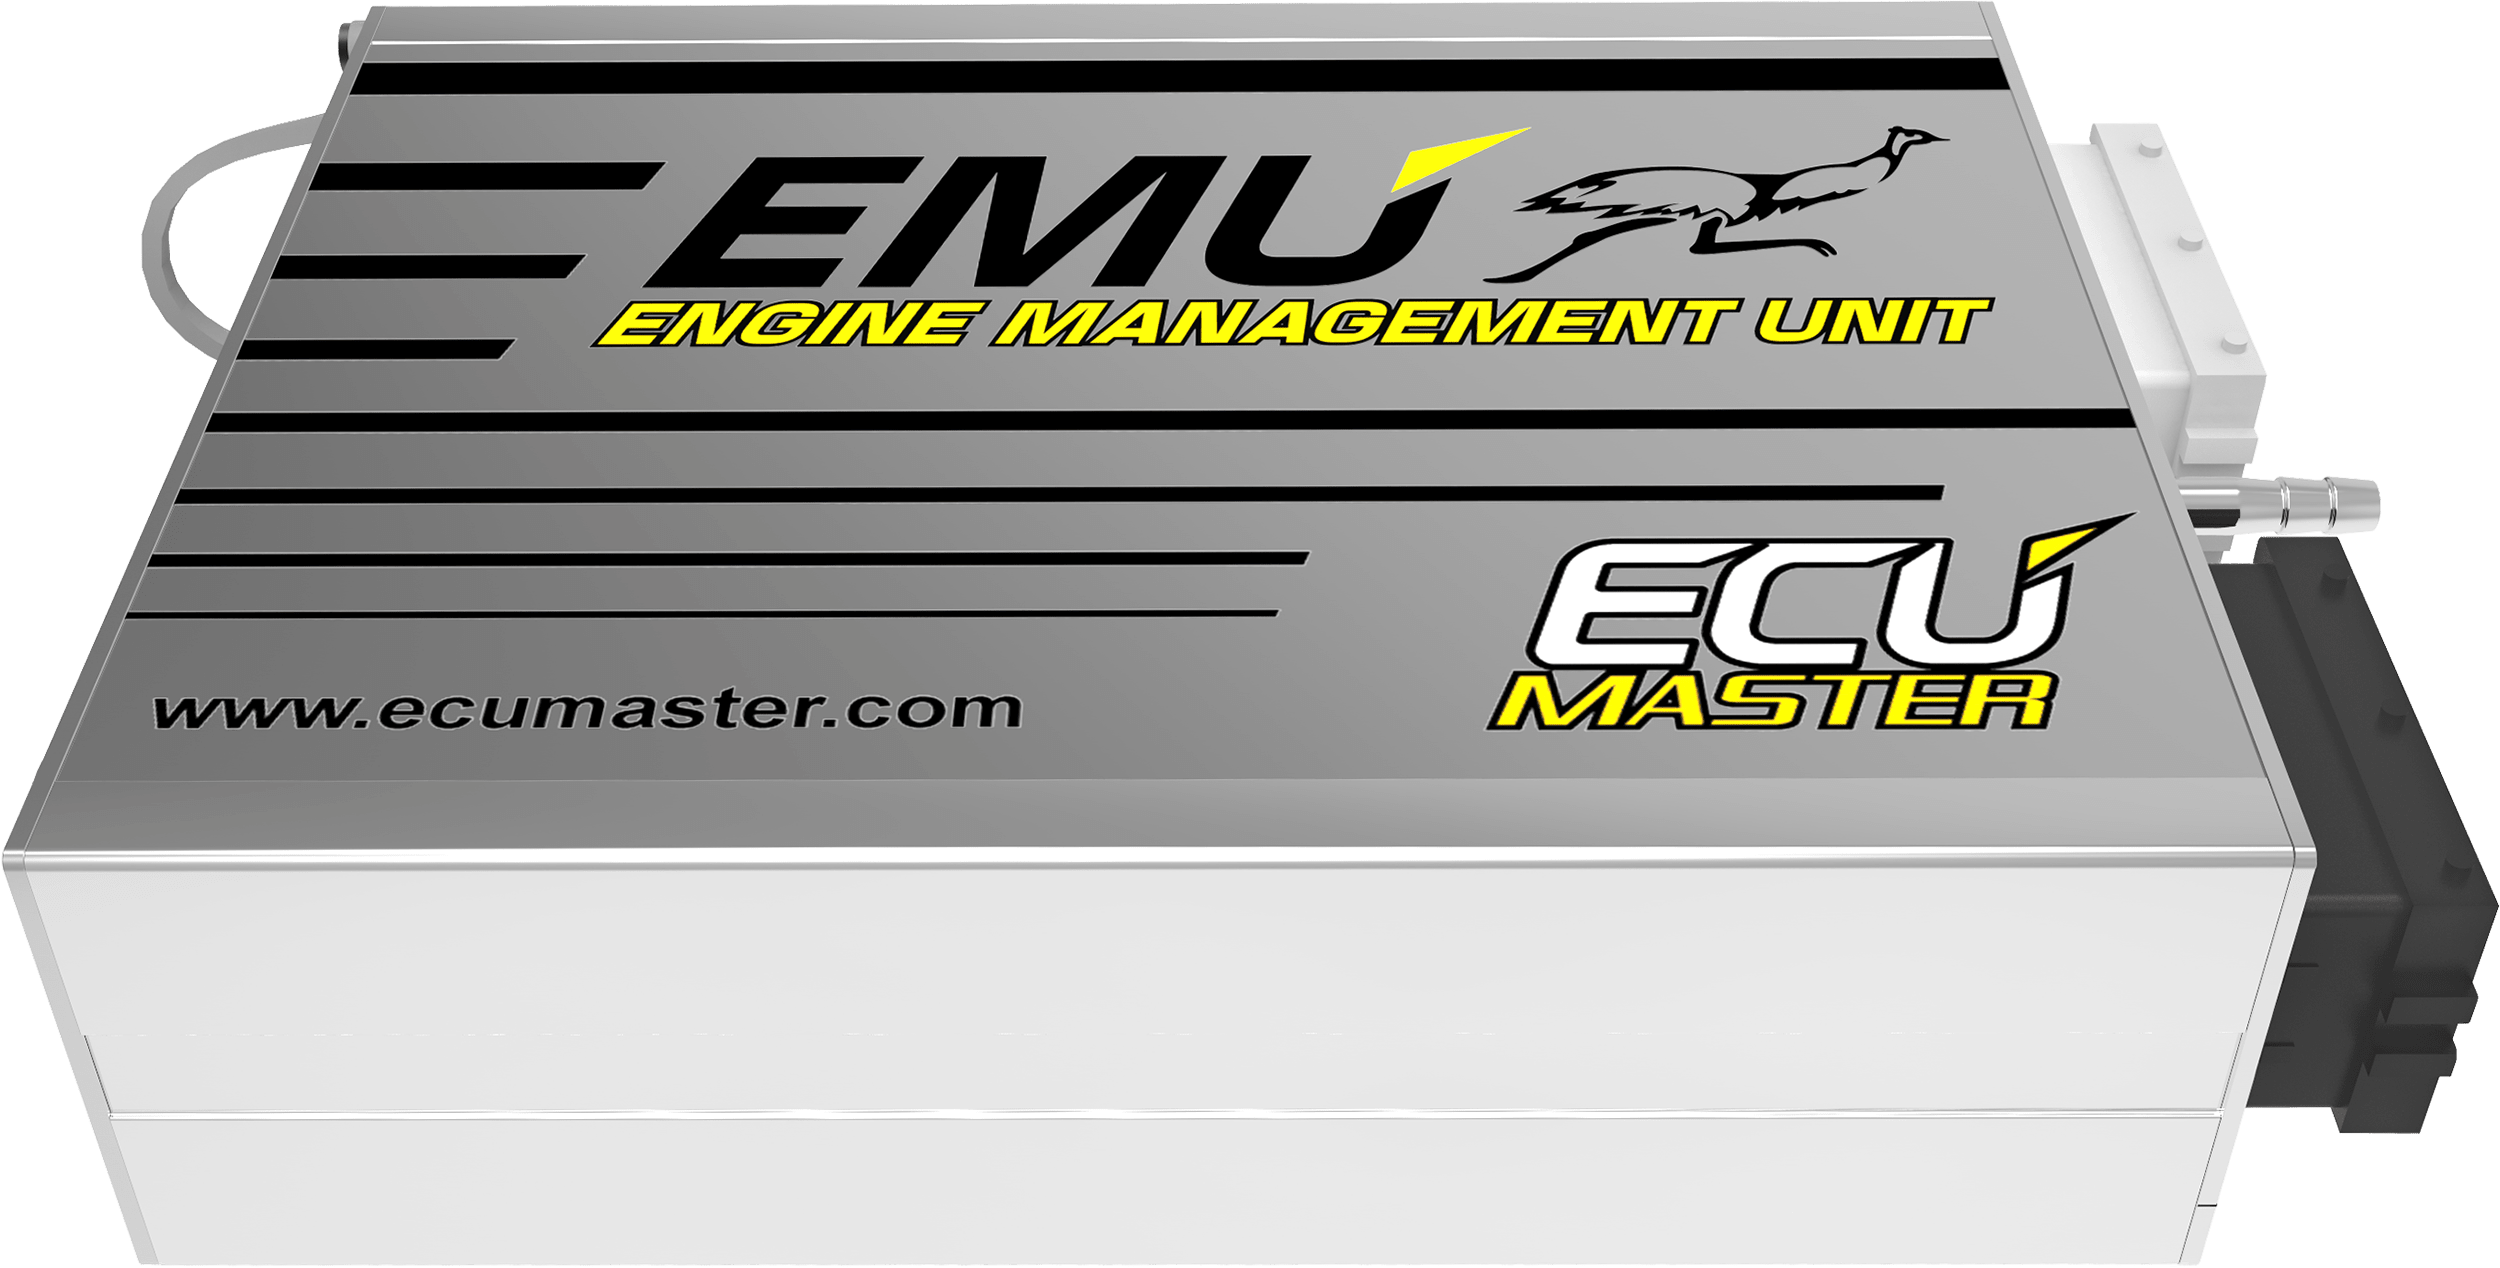 Ecumaster Emu Advanced Race Car Wiring The Adaptable Firmware Means Most Awkward Crank Trigger Patterns Can Be Utilized Allowing Future Proofing For New Not Yet Released